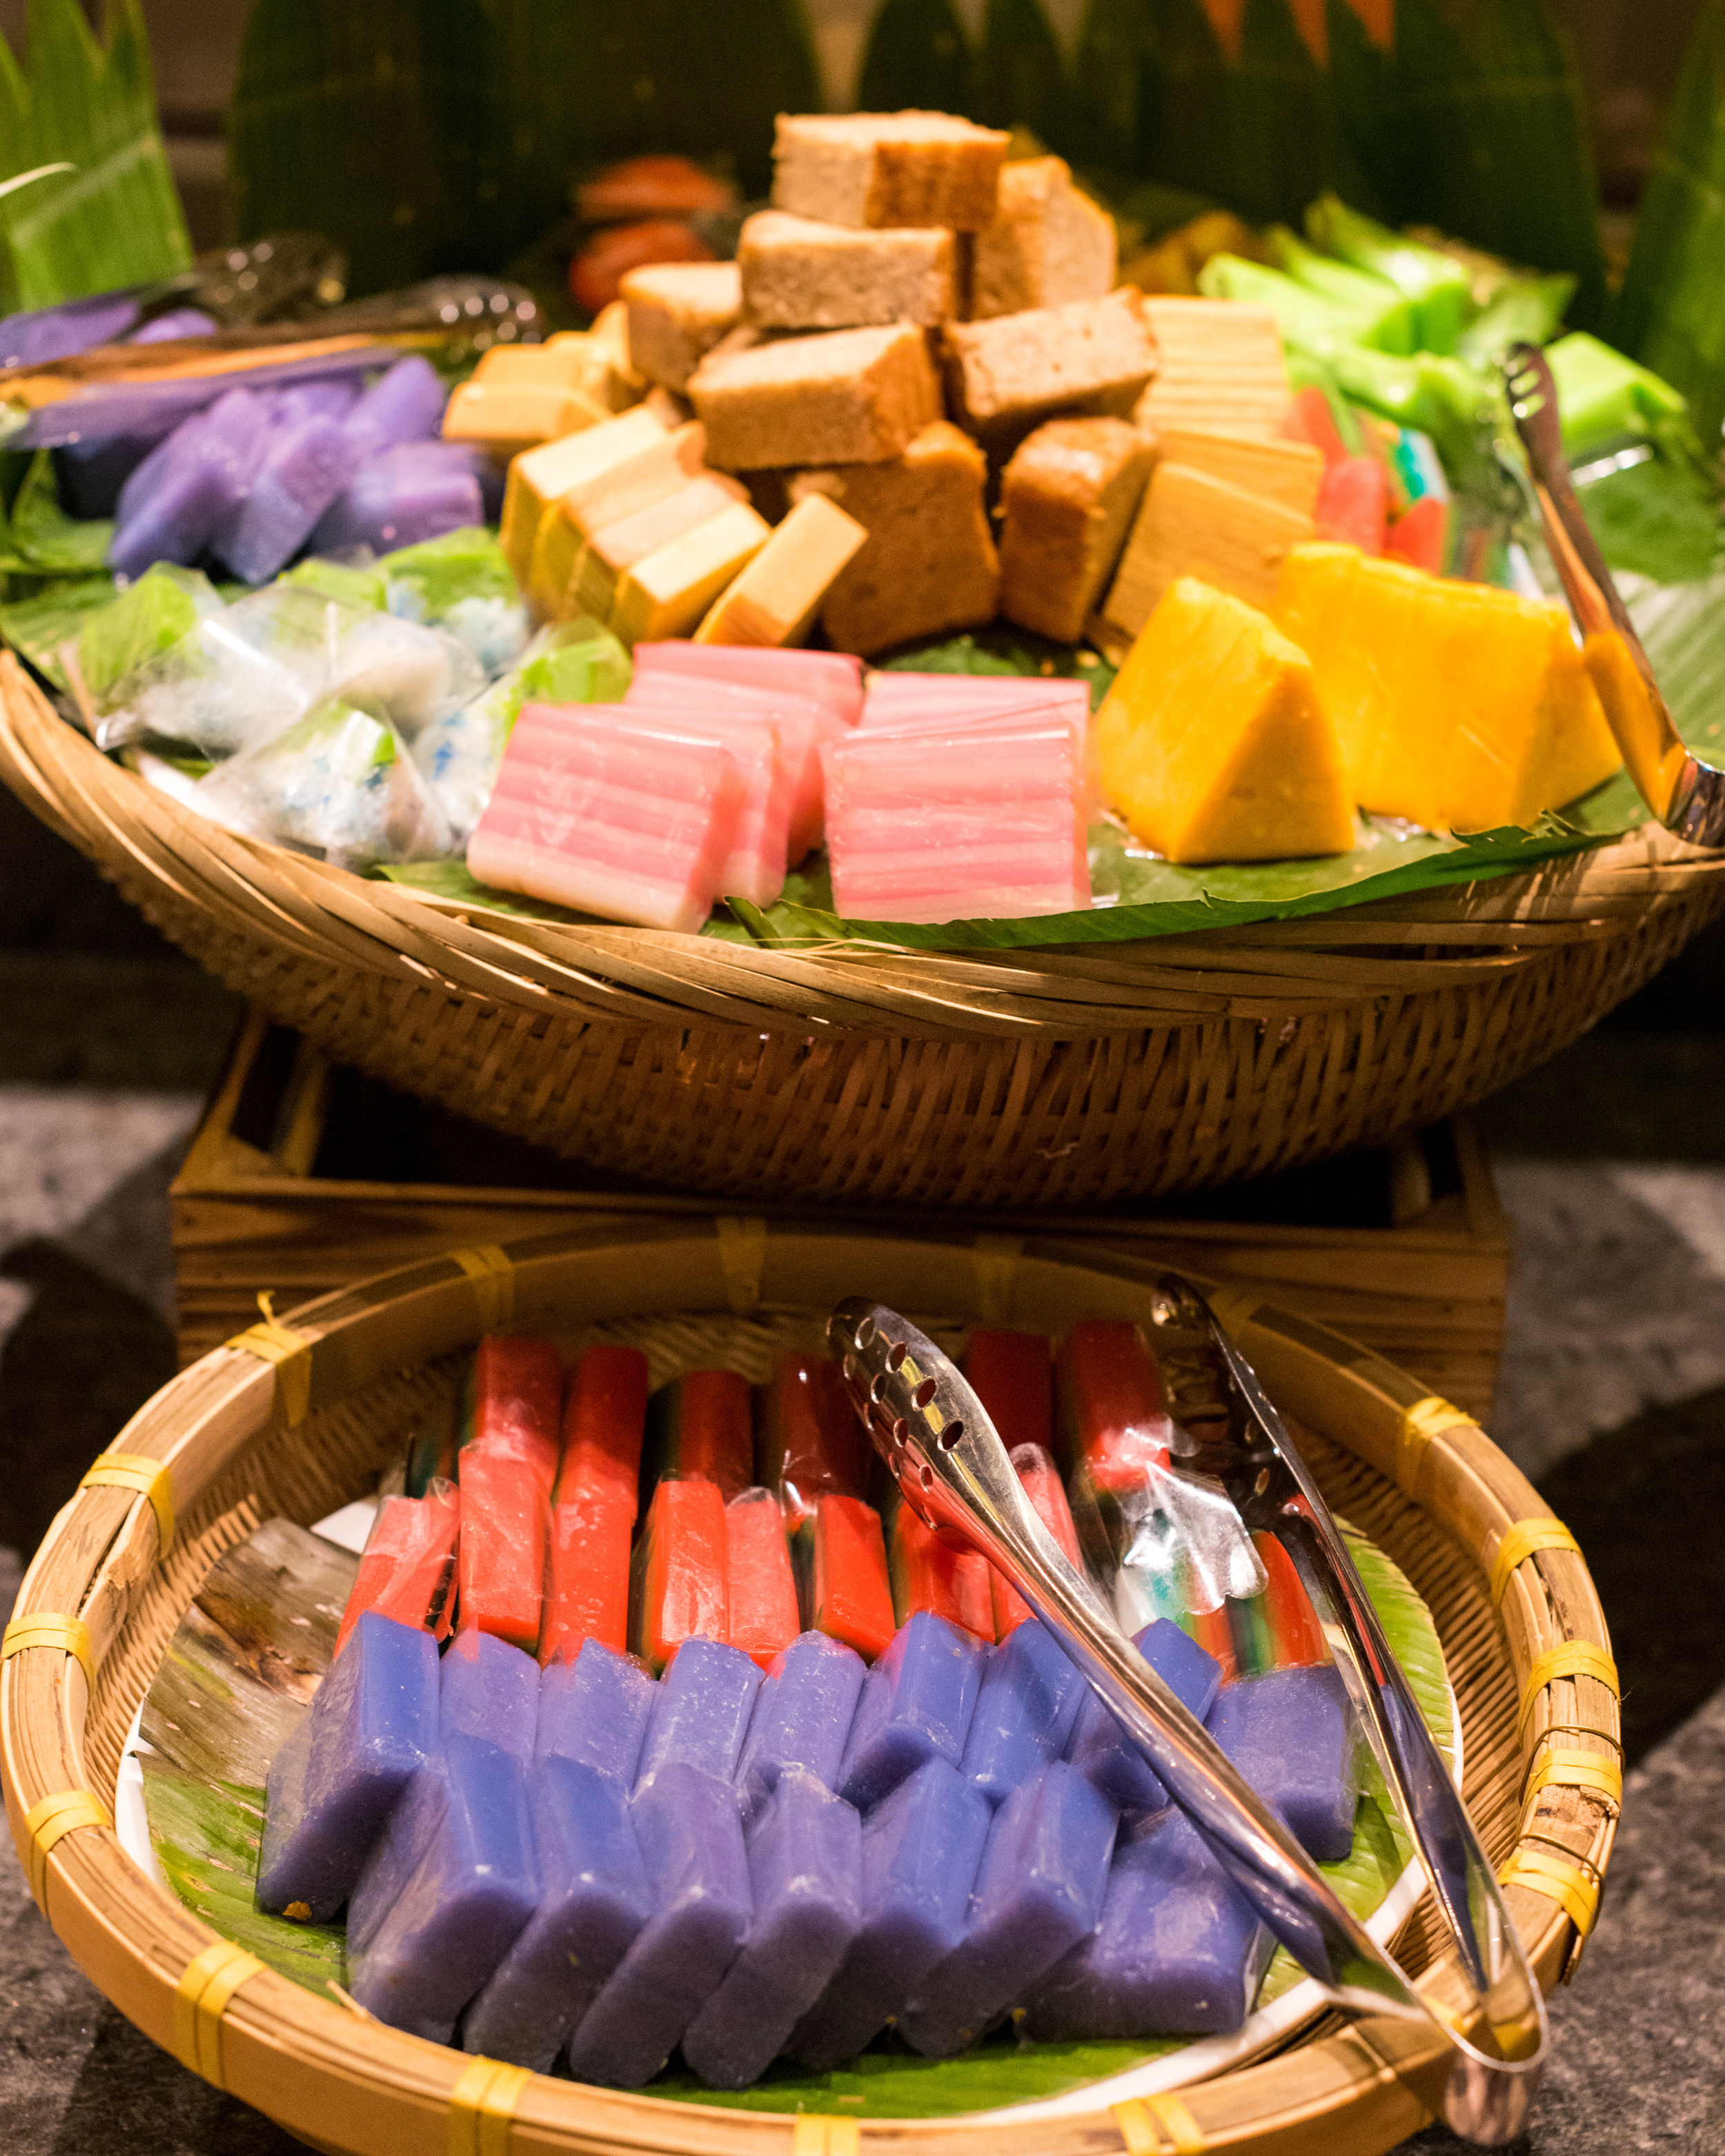 Local Cakes and Desserts - Sunday Brunch  J65 - Hotel Jen Tanglin Singapore